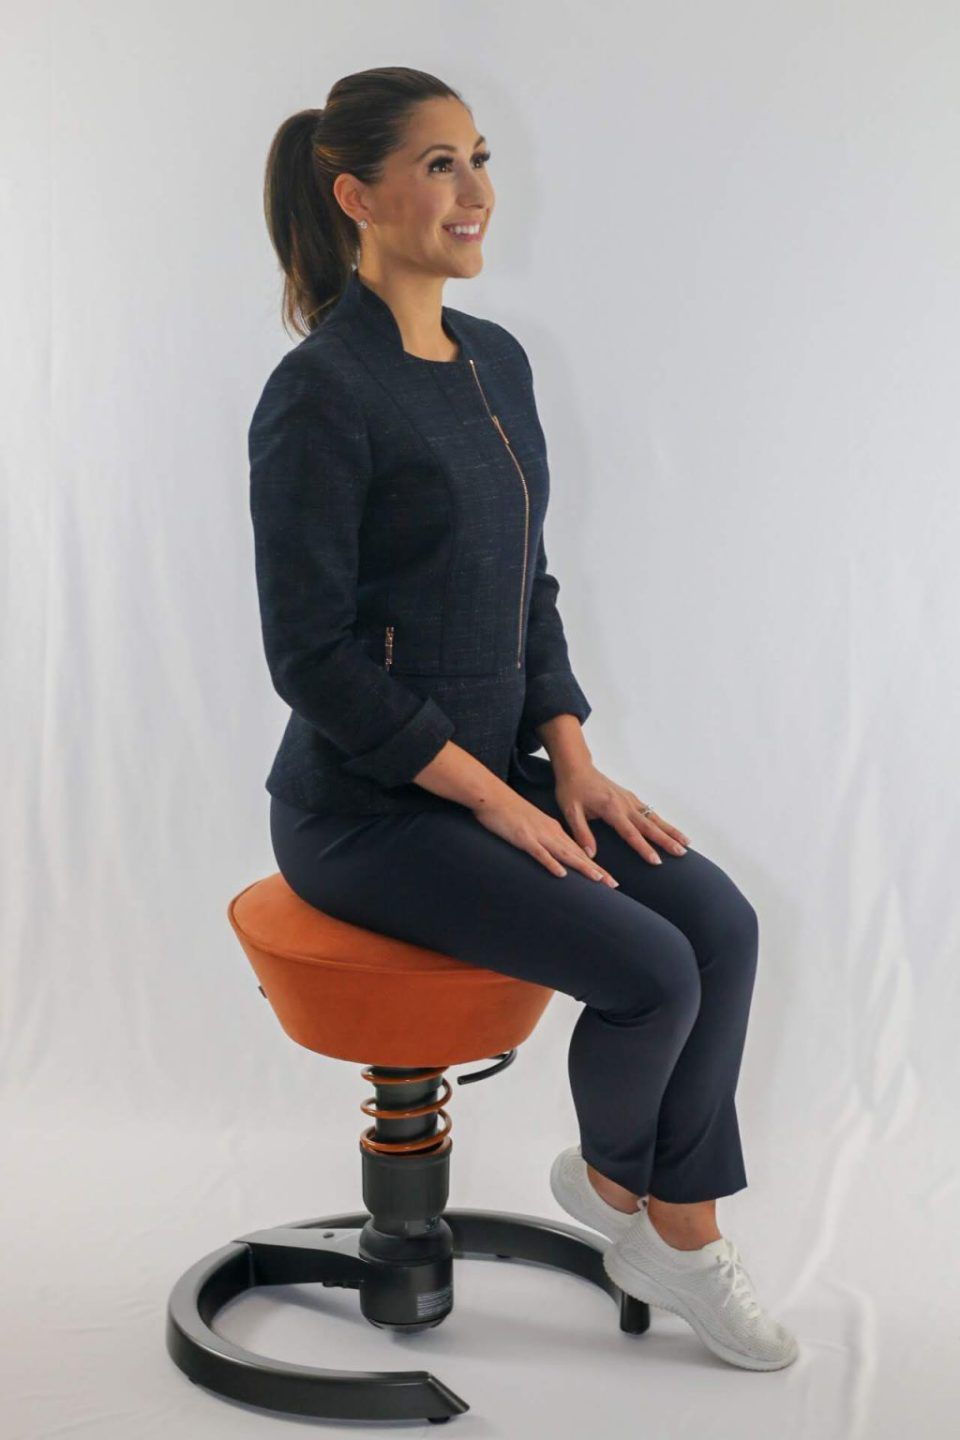 Swopper Chair Swopper Chair Active Seating Chair